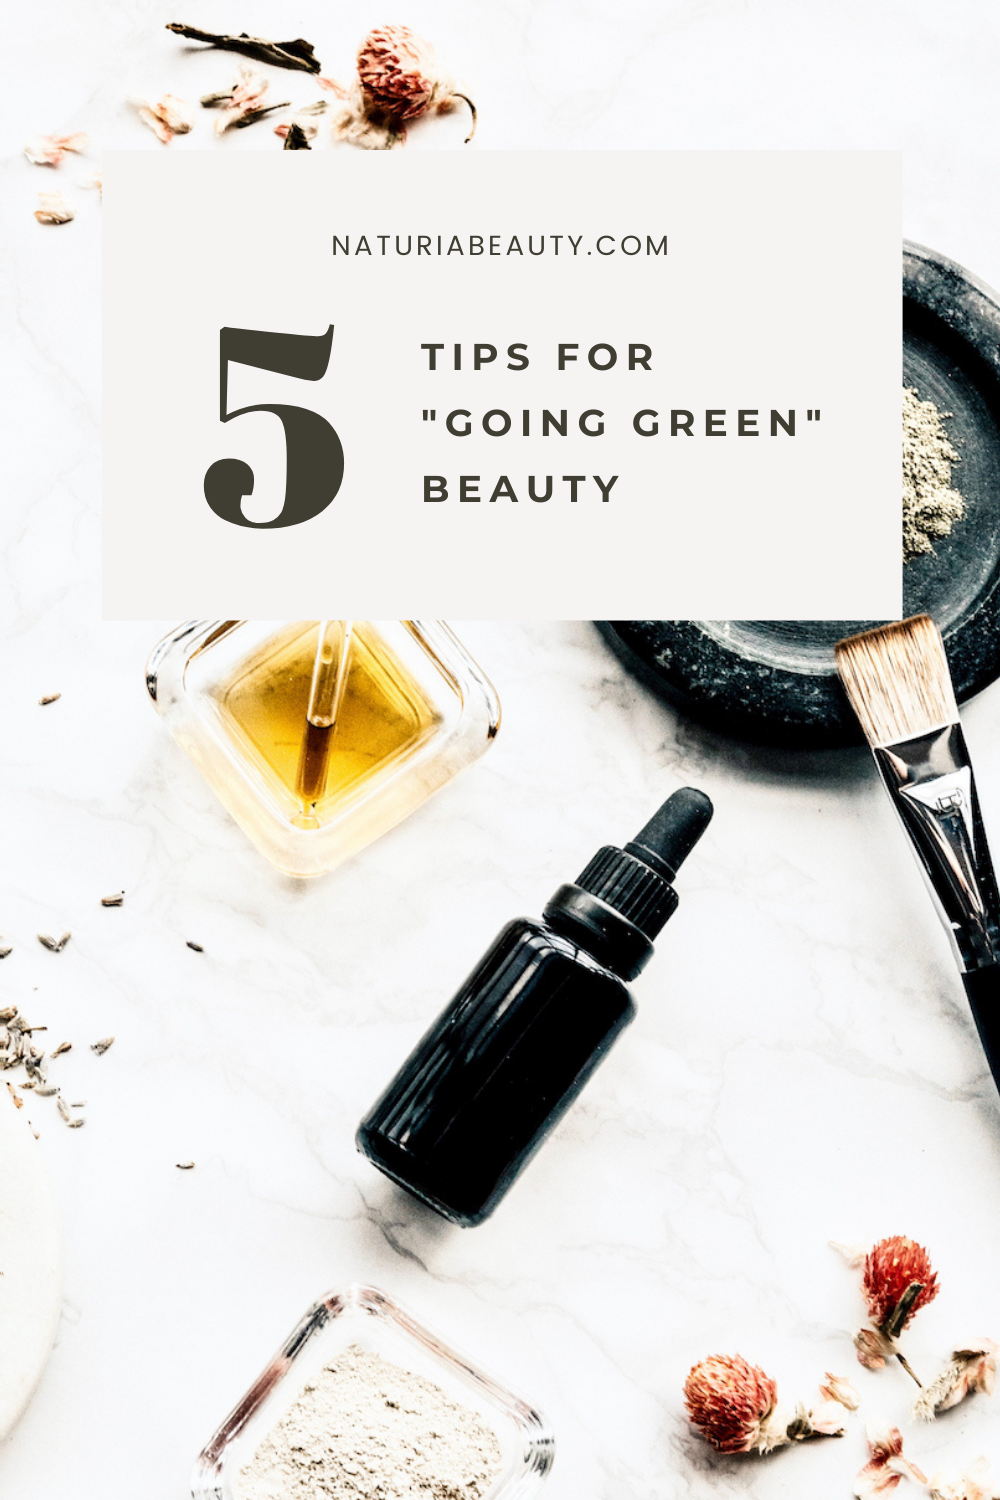 Tips for switching to natural / organic / clean beauty products